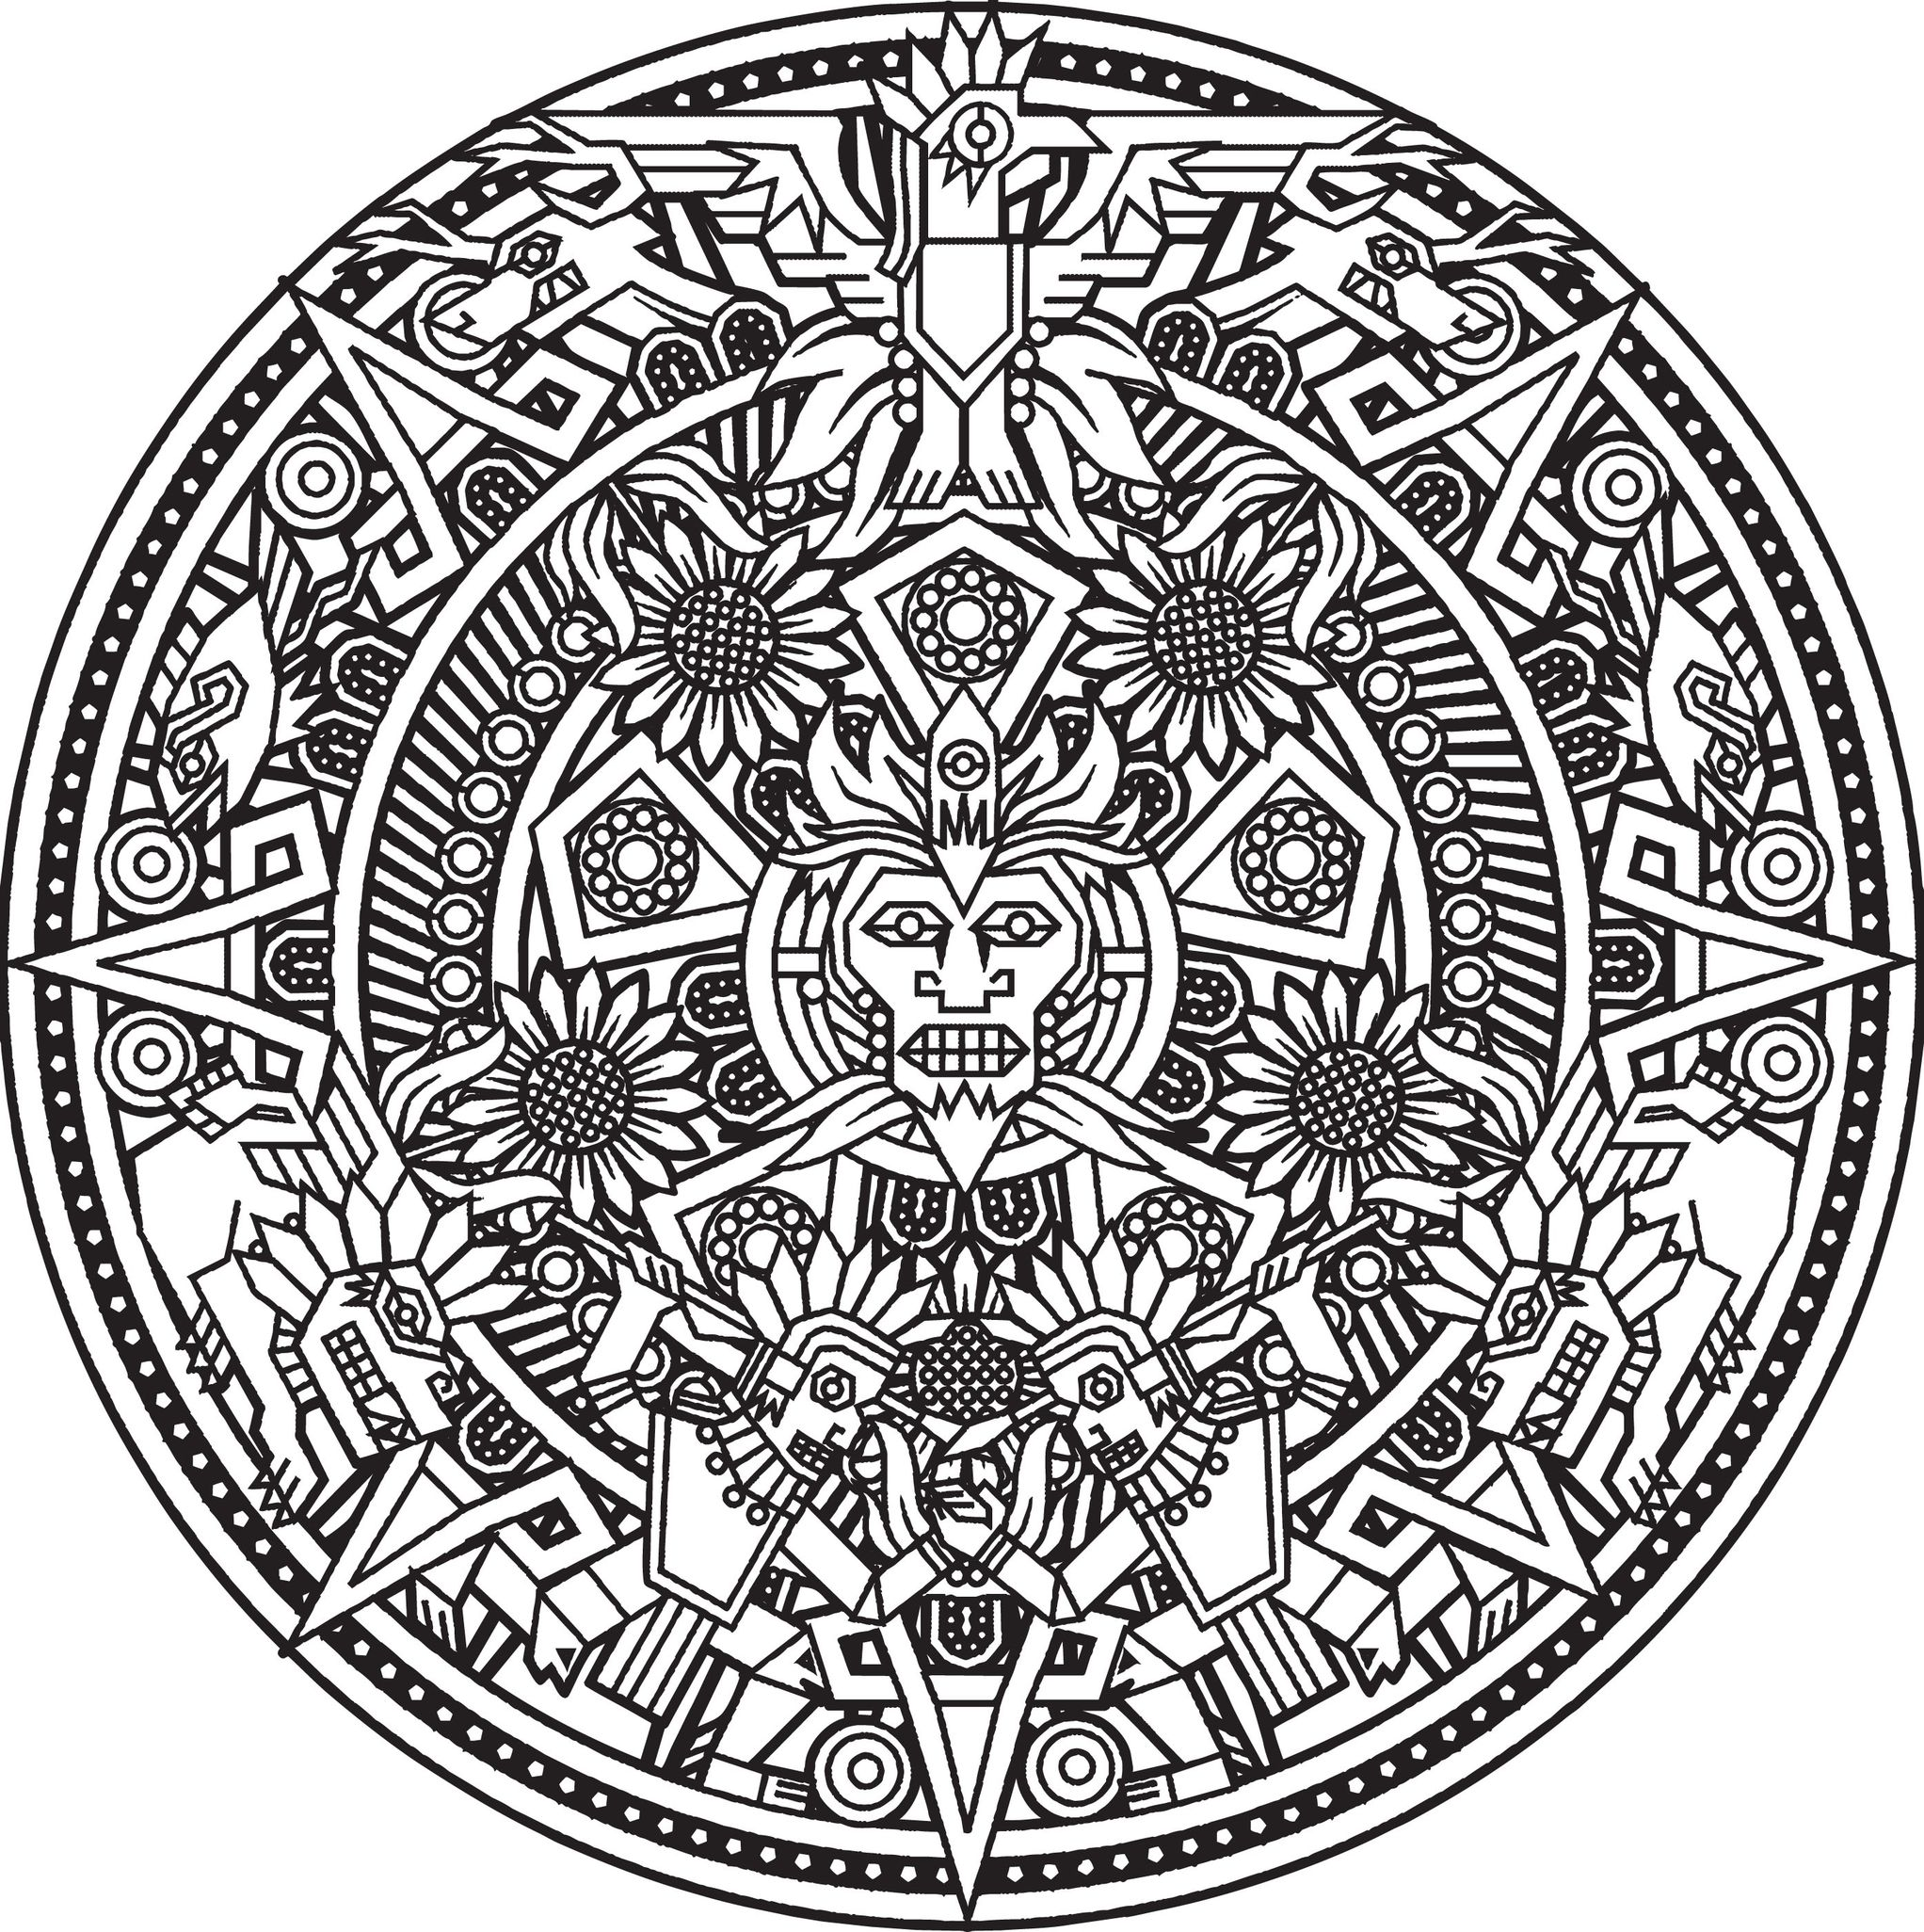 Coloring page mandala Inca or Maya God to color by Bigredlynx